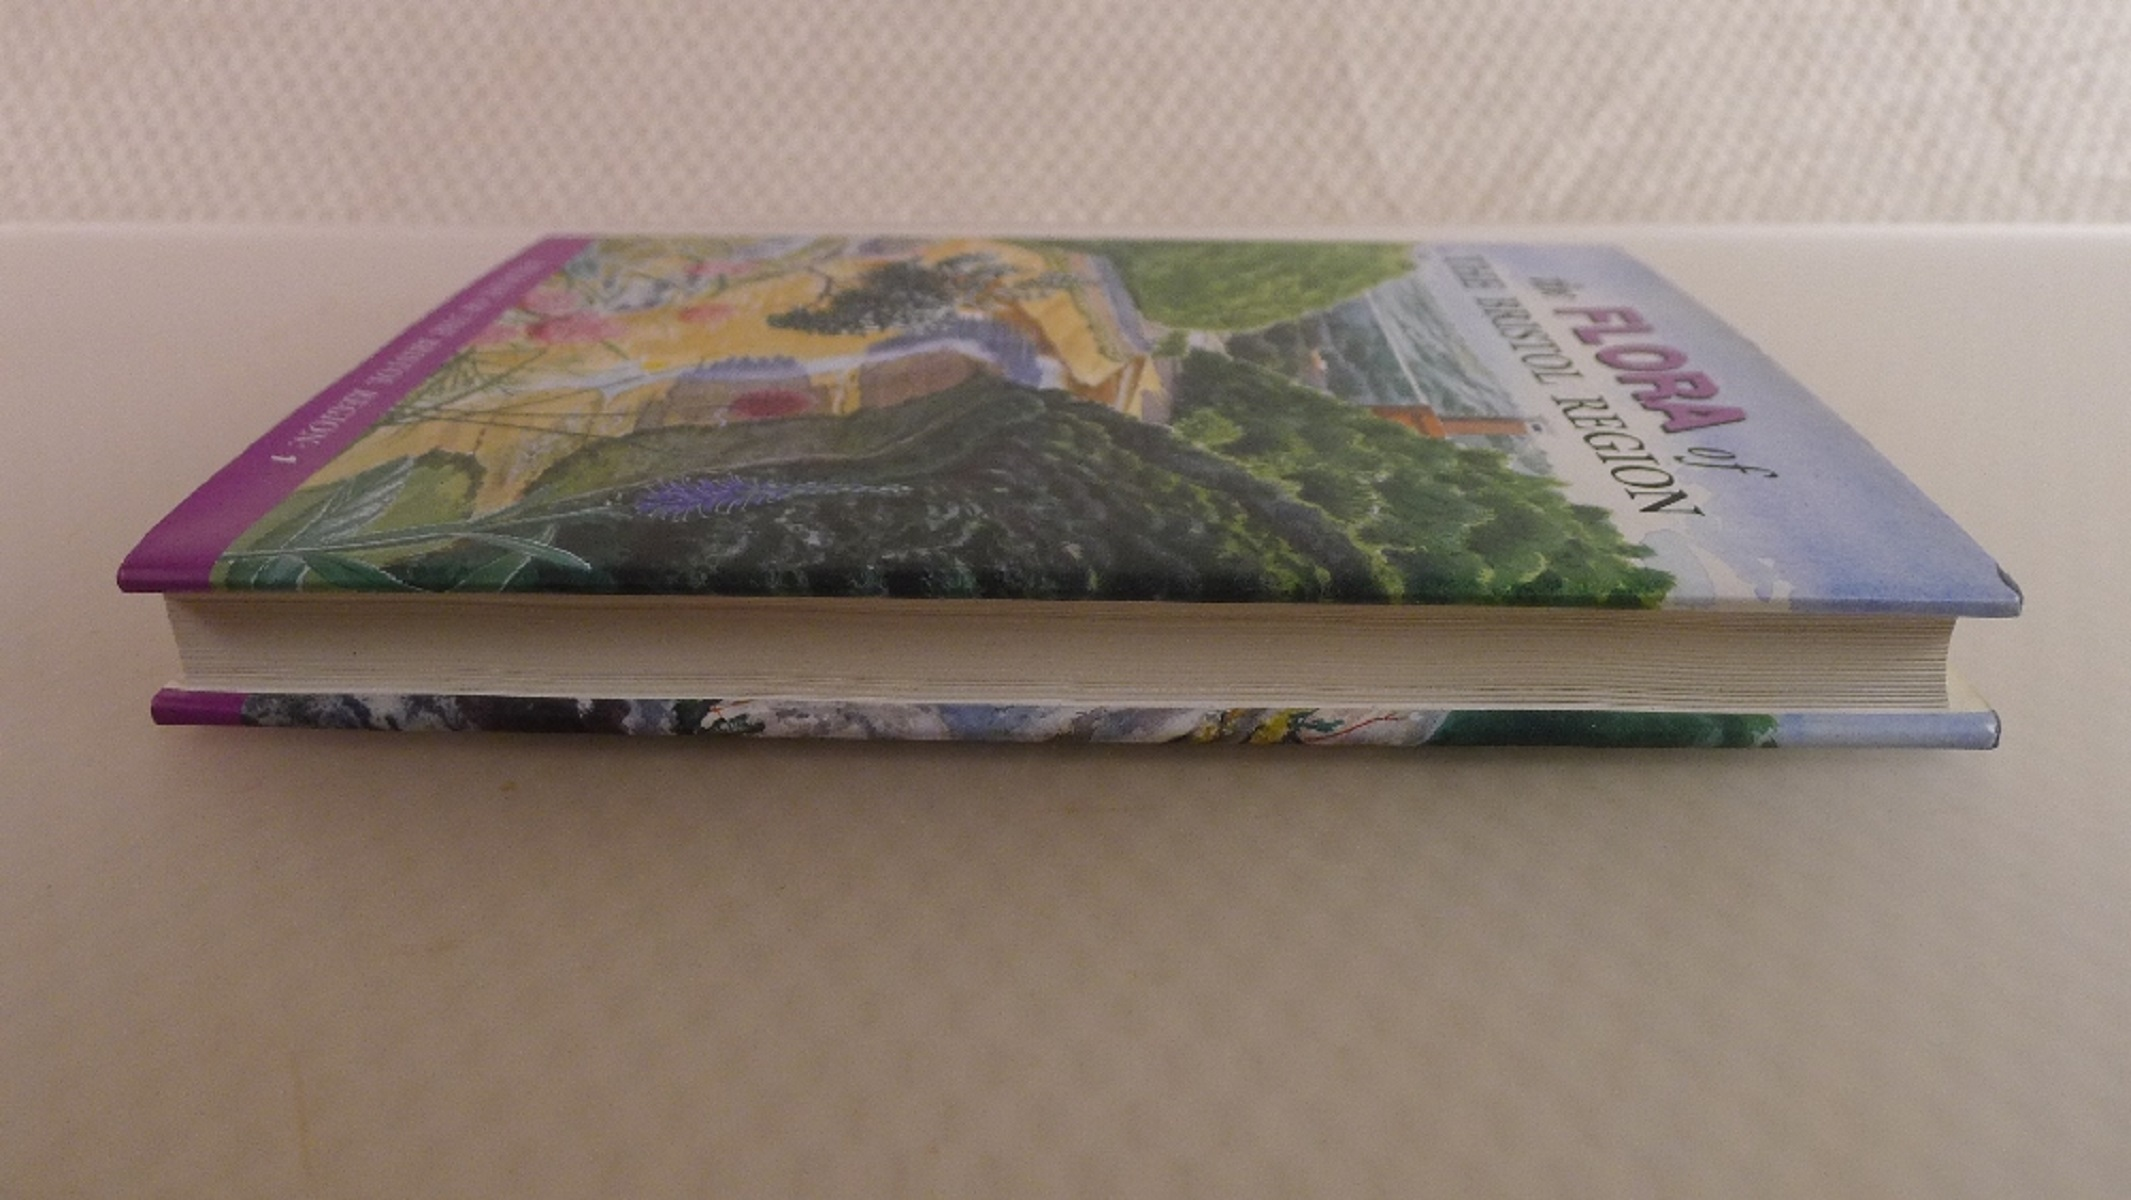 2 Books The Flora of The Bristol Region by Ian Green, Rupert Higgins, Clare Kitchen and Mark Kitchen - Image 6 of 8